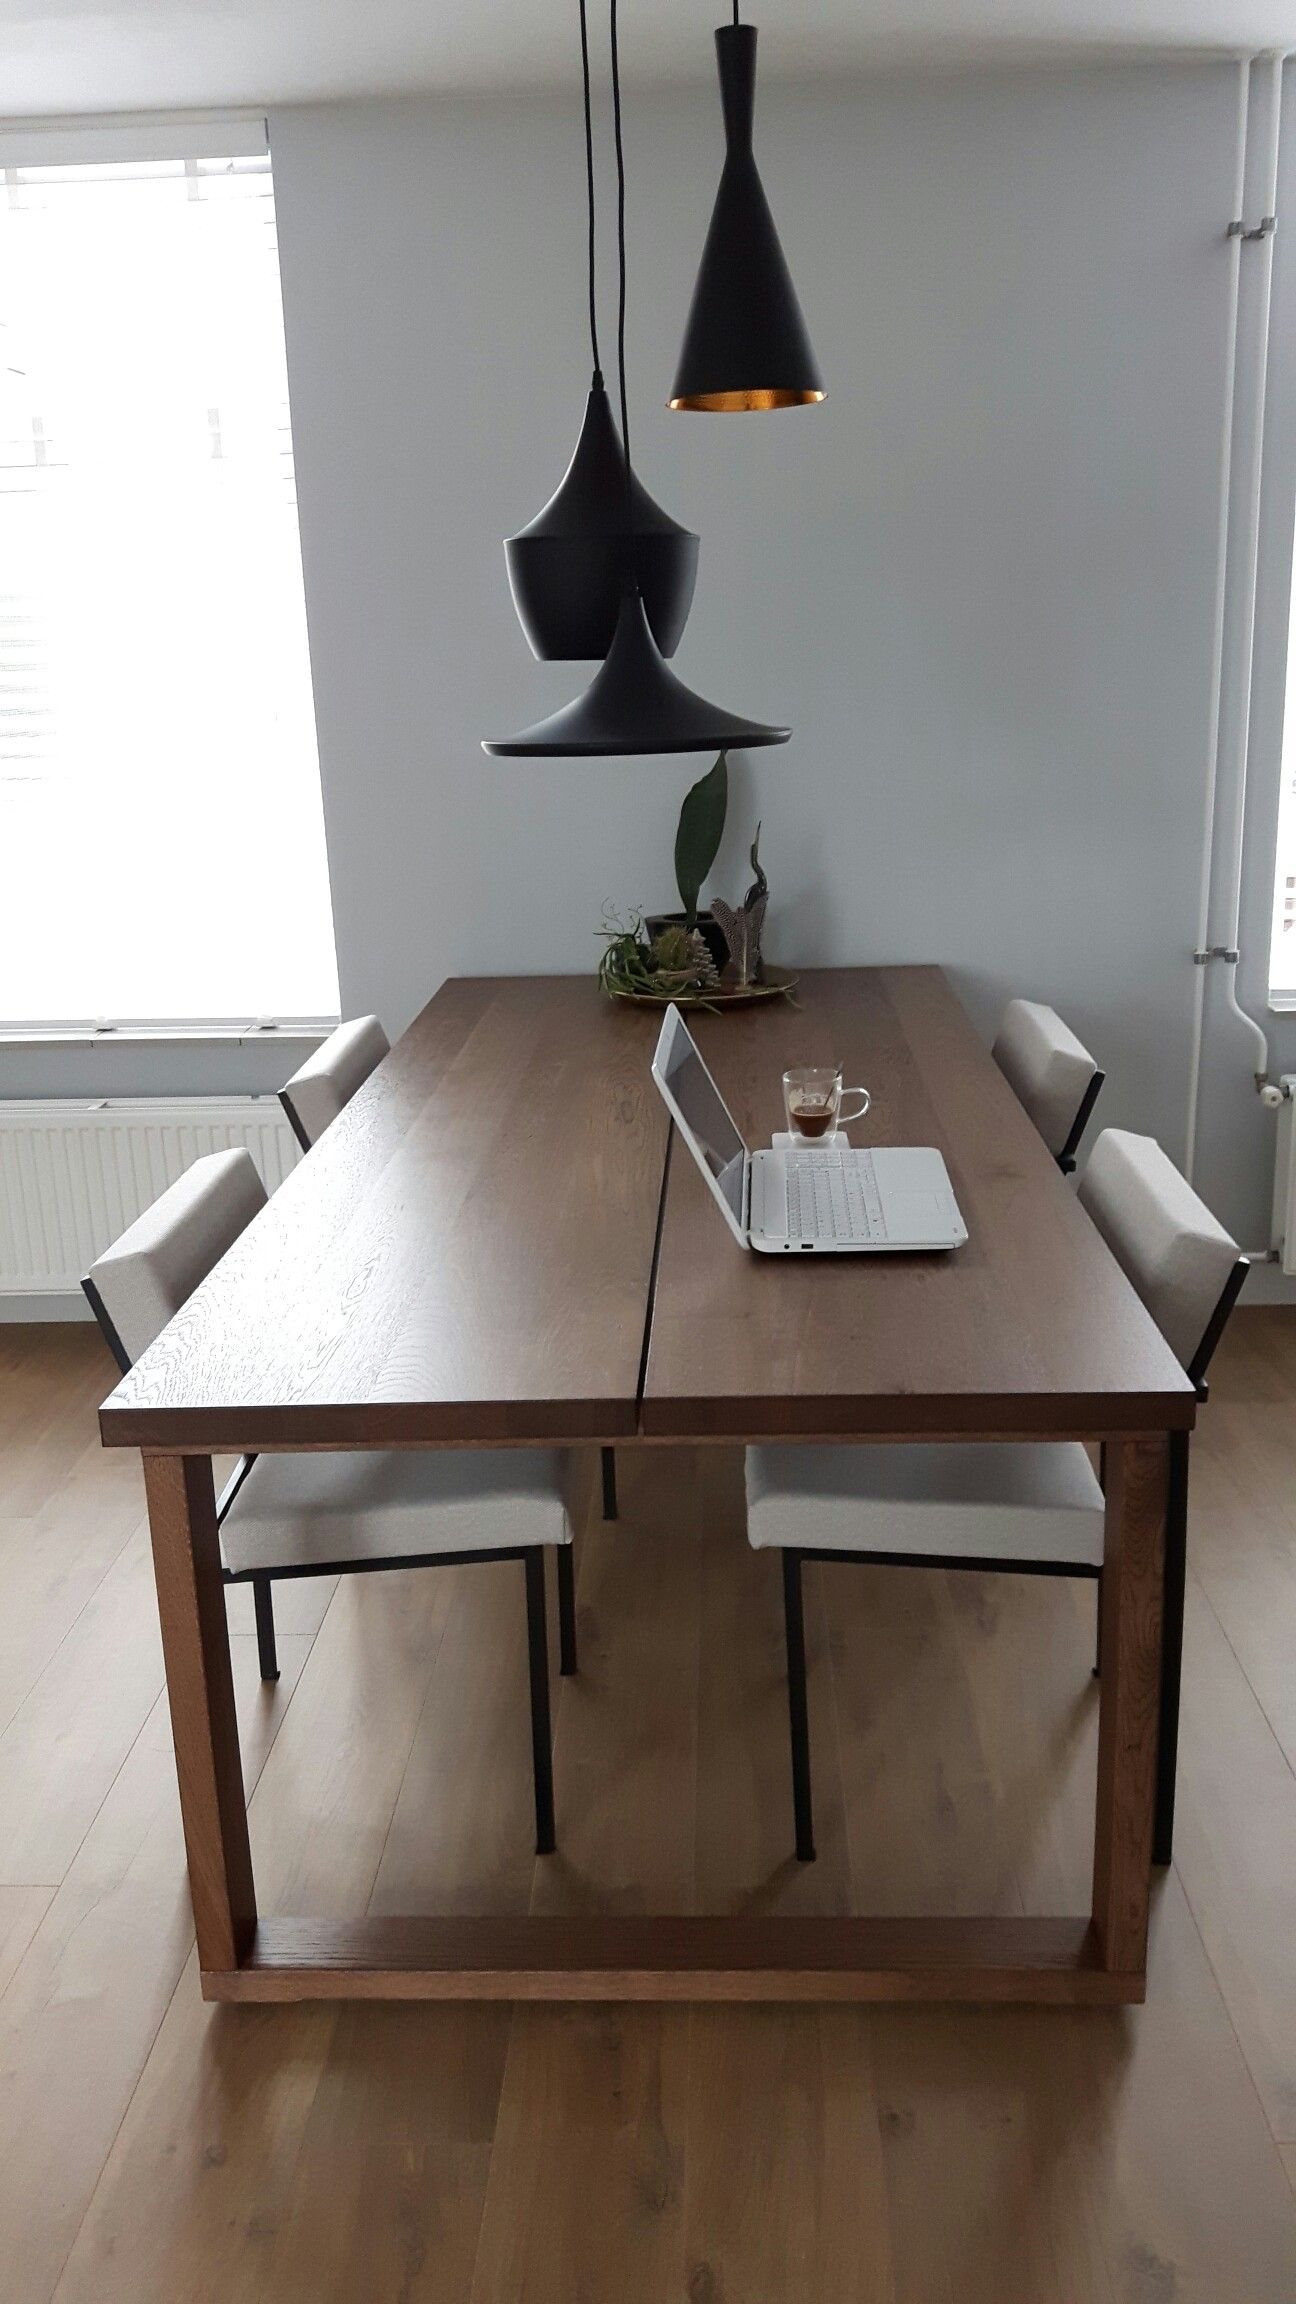 Morby Langa Ikea Tom Dixon Lampen Home Decor Home Dining Table